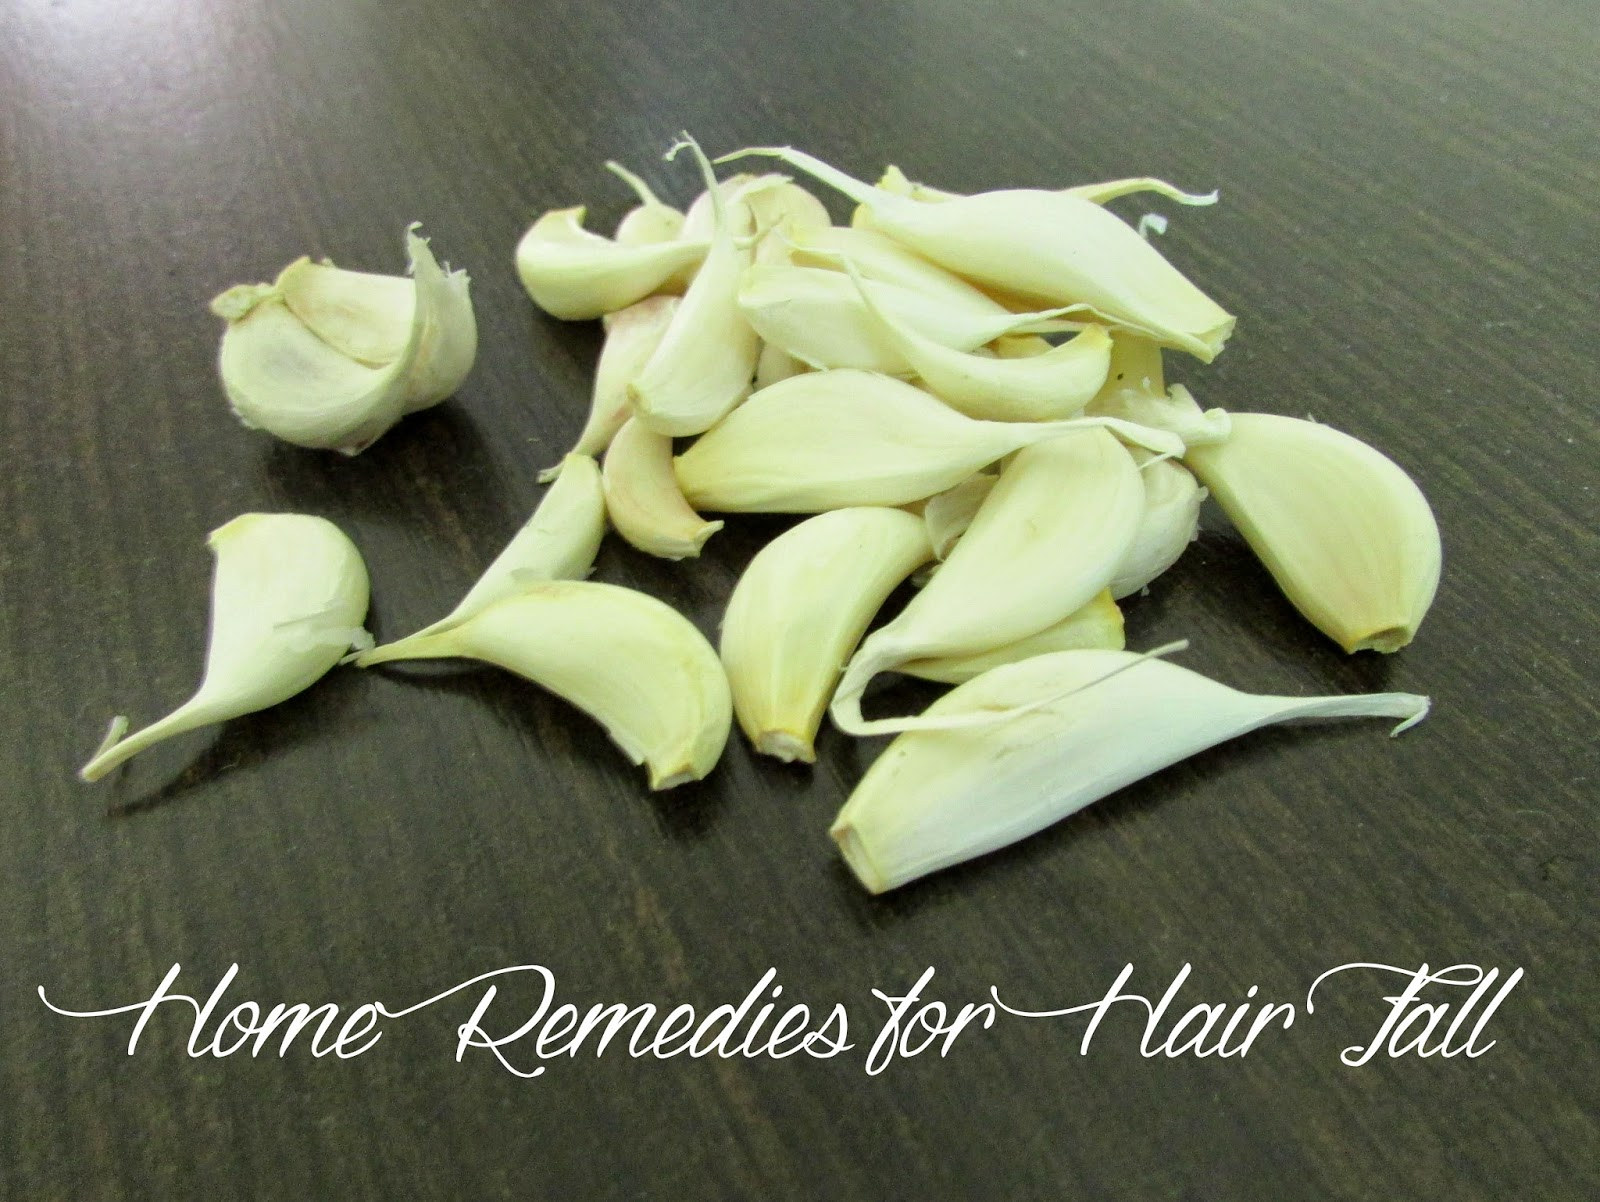 Home remedies for hair fall, home remedies , hair fall remedies, hair loss remedies, home remedies for hair loss, hair home me defies, home remedies for hair, hair, remedies for hair, hair fall control, hair control, garlic, garlic for hair loss, garlic for hair fall, garlic for hair , how to use garlic for hair fall, how to use garlic for hair loss, how to use garlic for hair, uses of garlic, garlic uses, benefits of garlic, raw garlic, benefited of raw garlic, benefits of eating raw garlic, eating raw garlic in morning, eat raw garlic in morning, superfood, superfood garlic, garlic pod, pod if garlic,